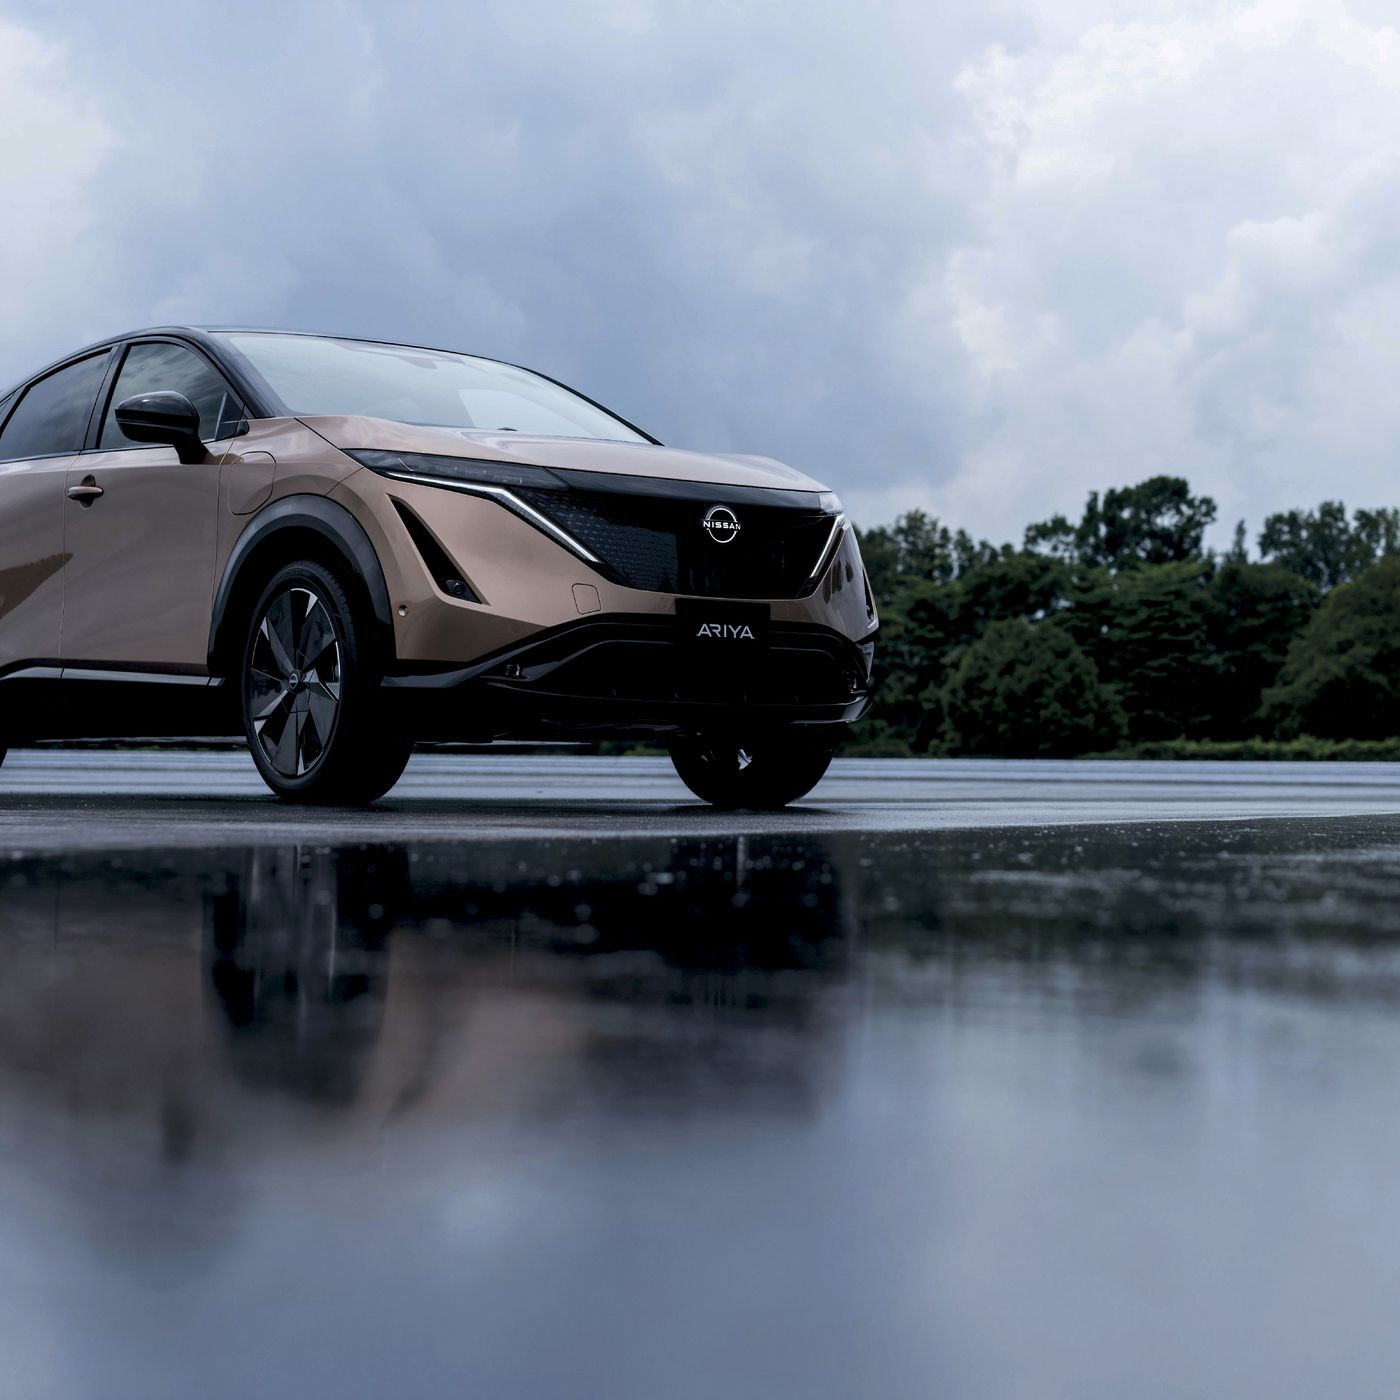 Nissan Reveals 40 000 Electric Suv Nissan Ariya To Arrive In 2021 Chicago Sun Times